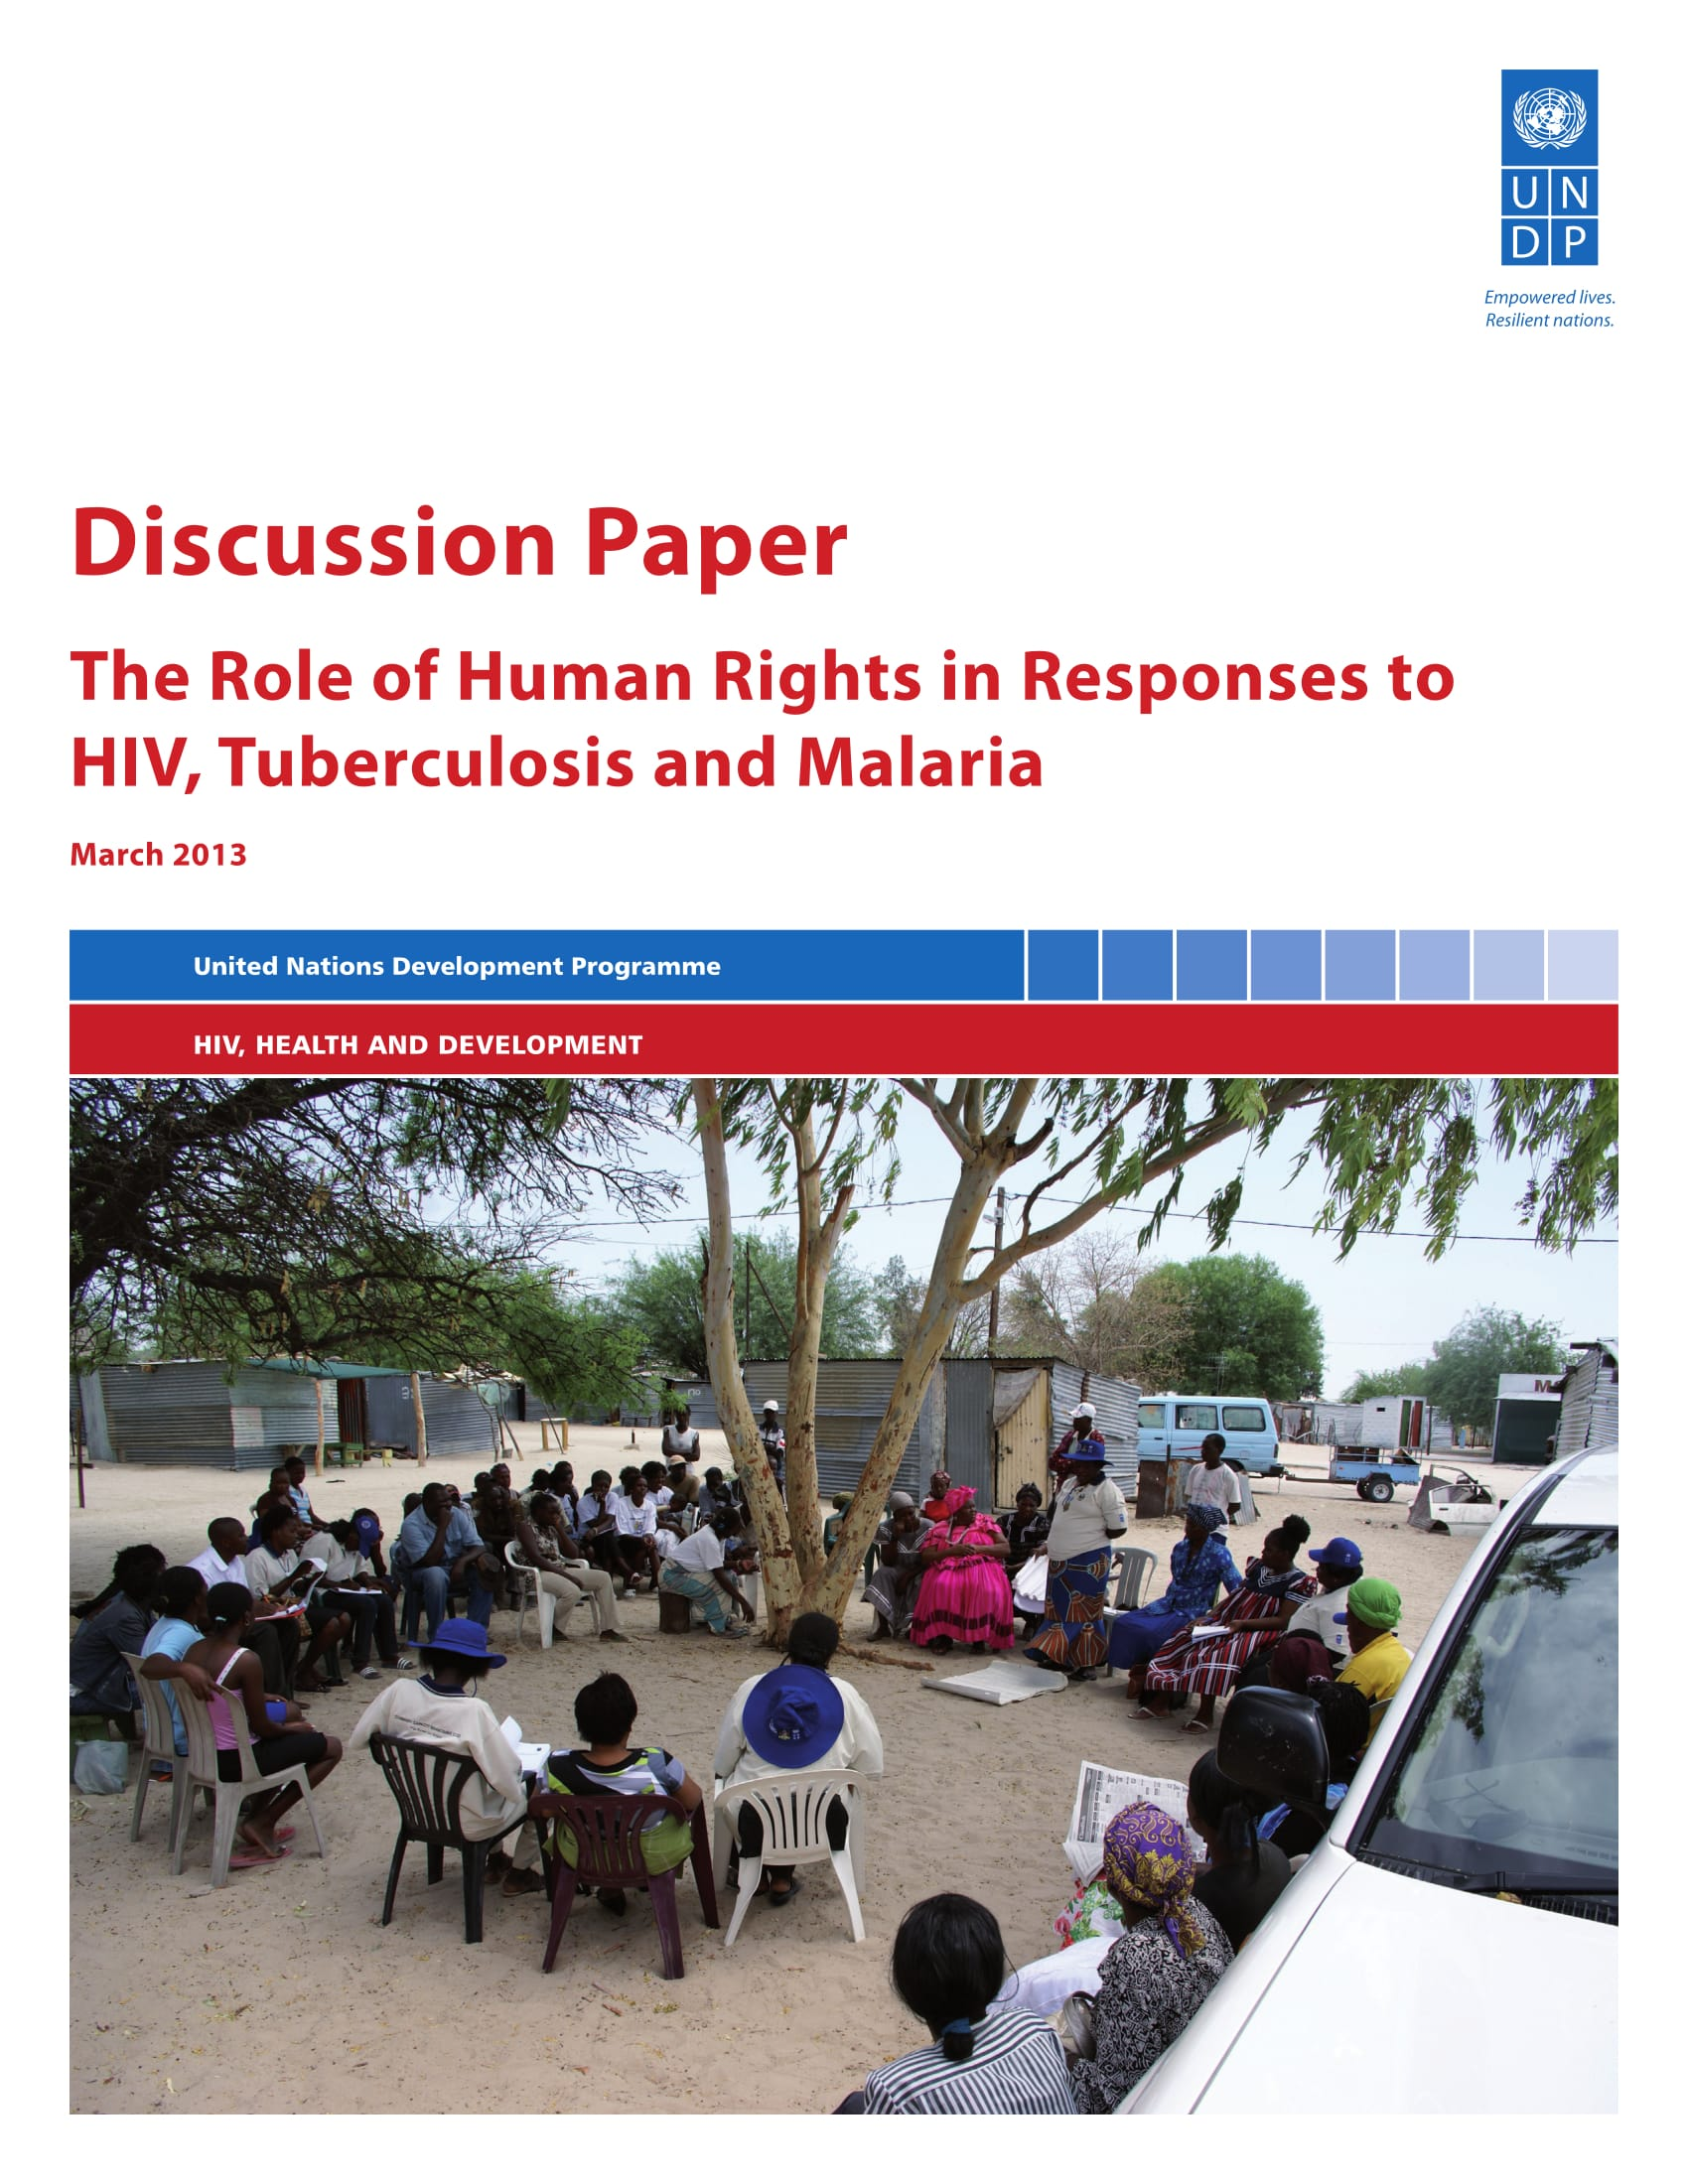 The Role of Human Rights in Responses to HIV, Tuberculosis and Malaria